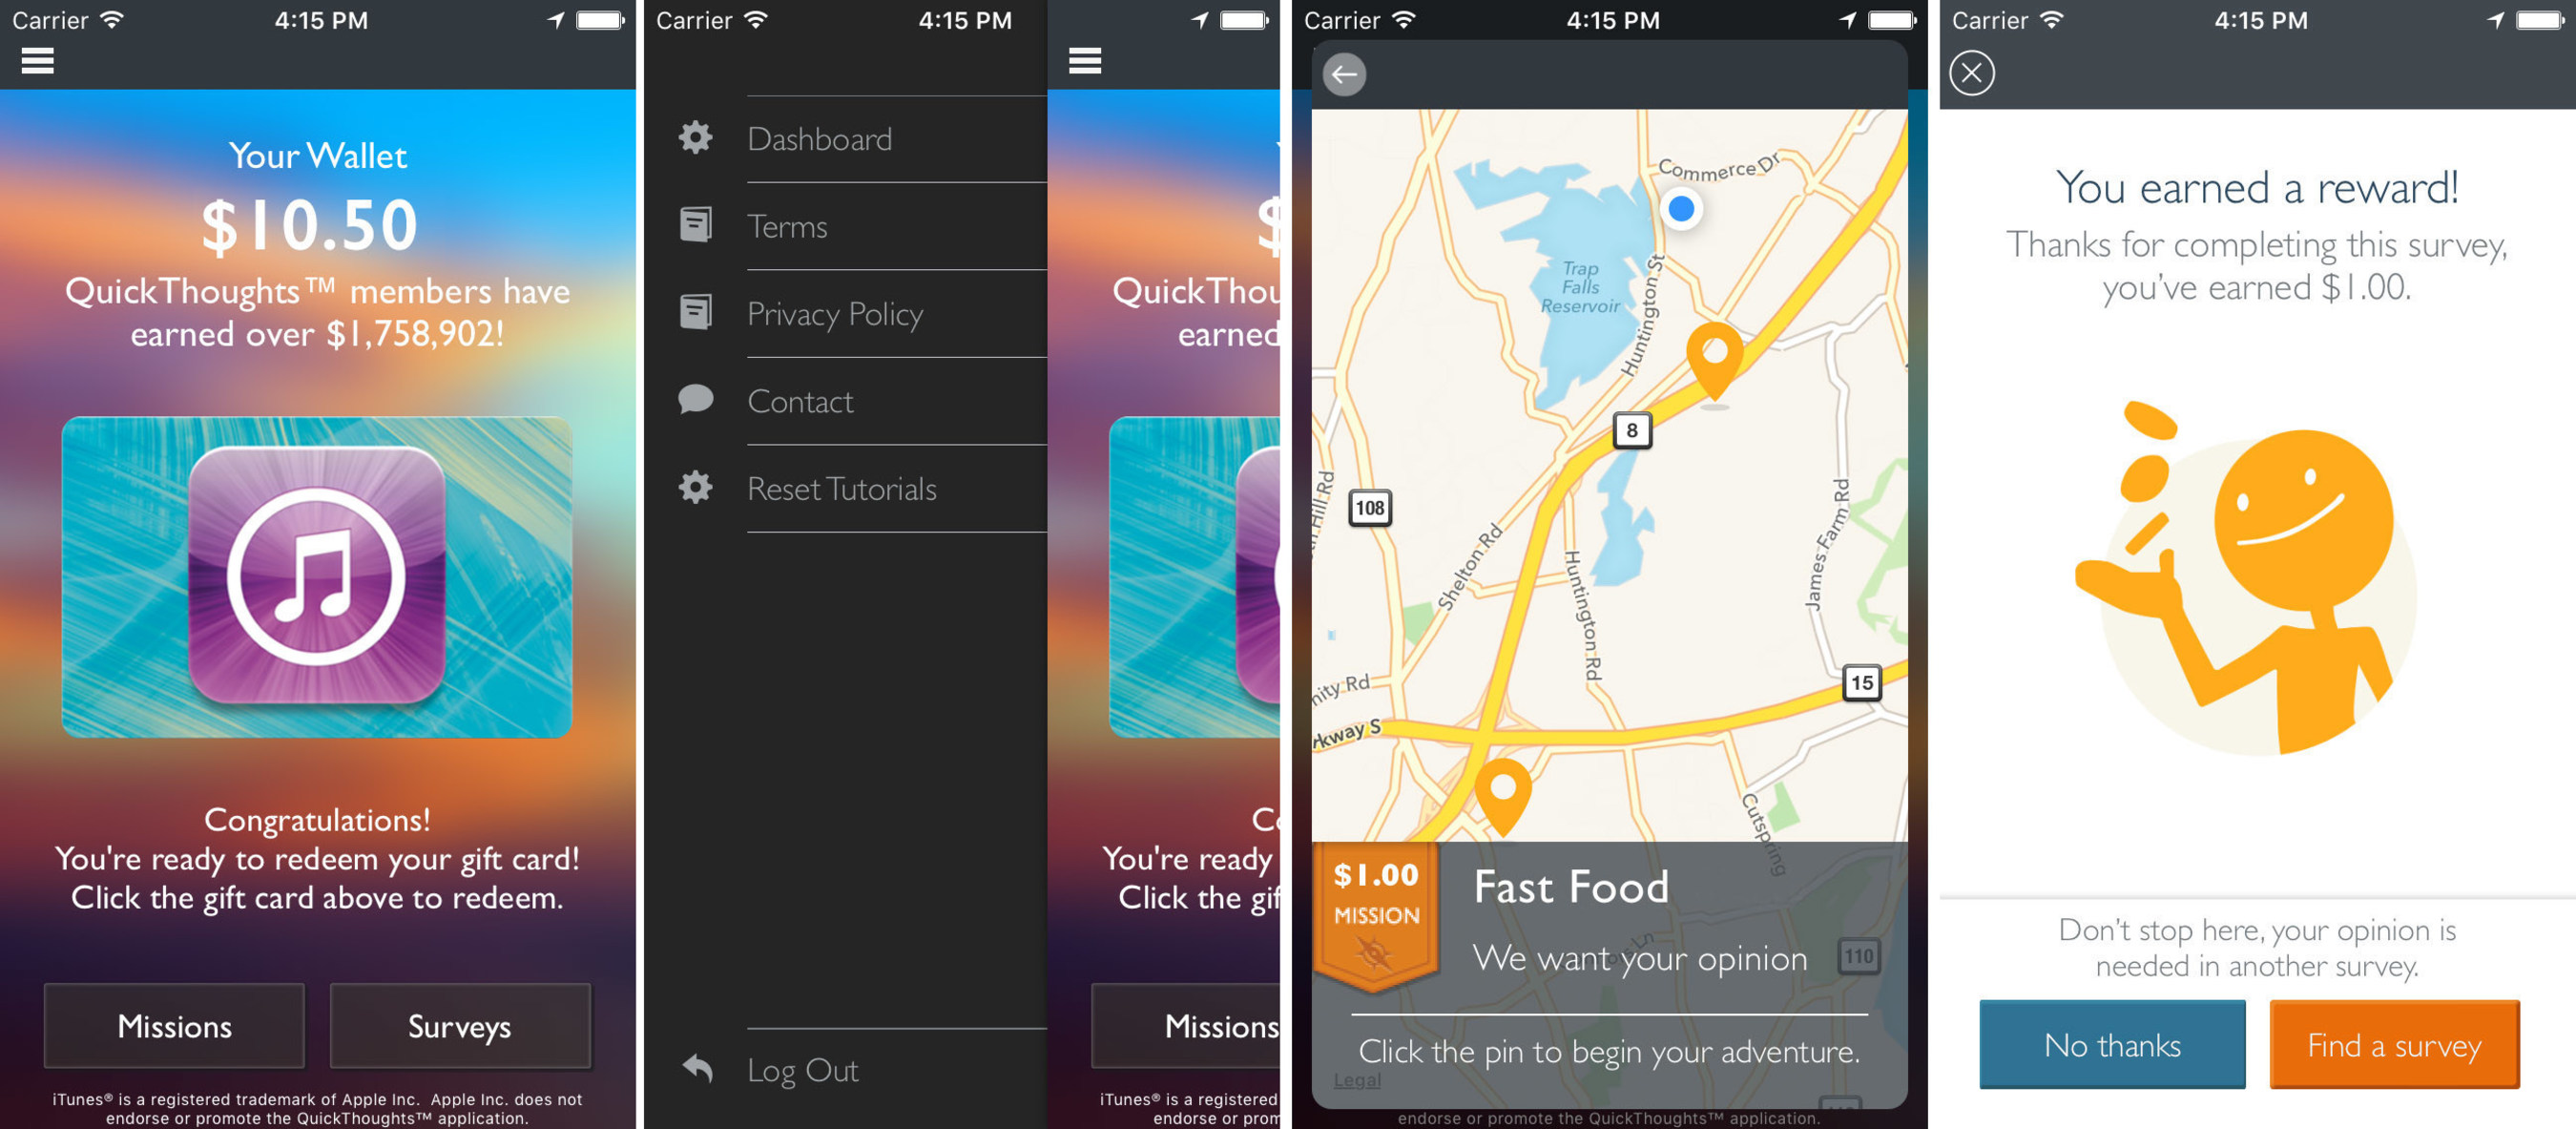 New SSI QuickThoughts 2.0 Mobile App Gets High Marks